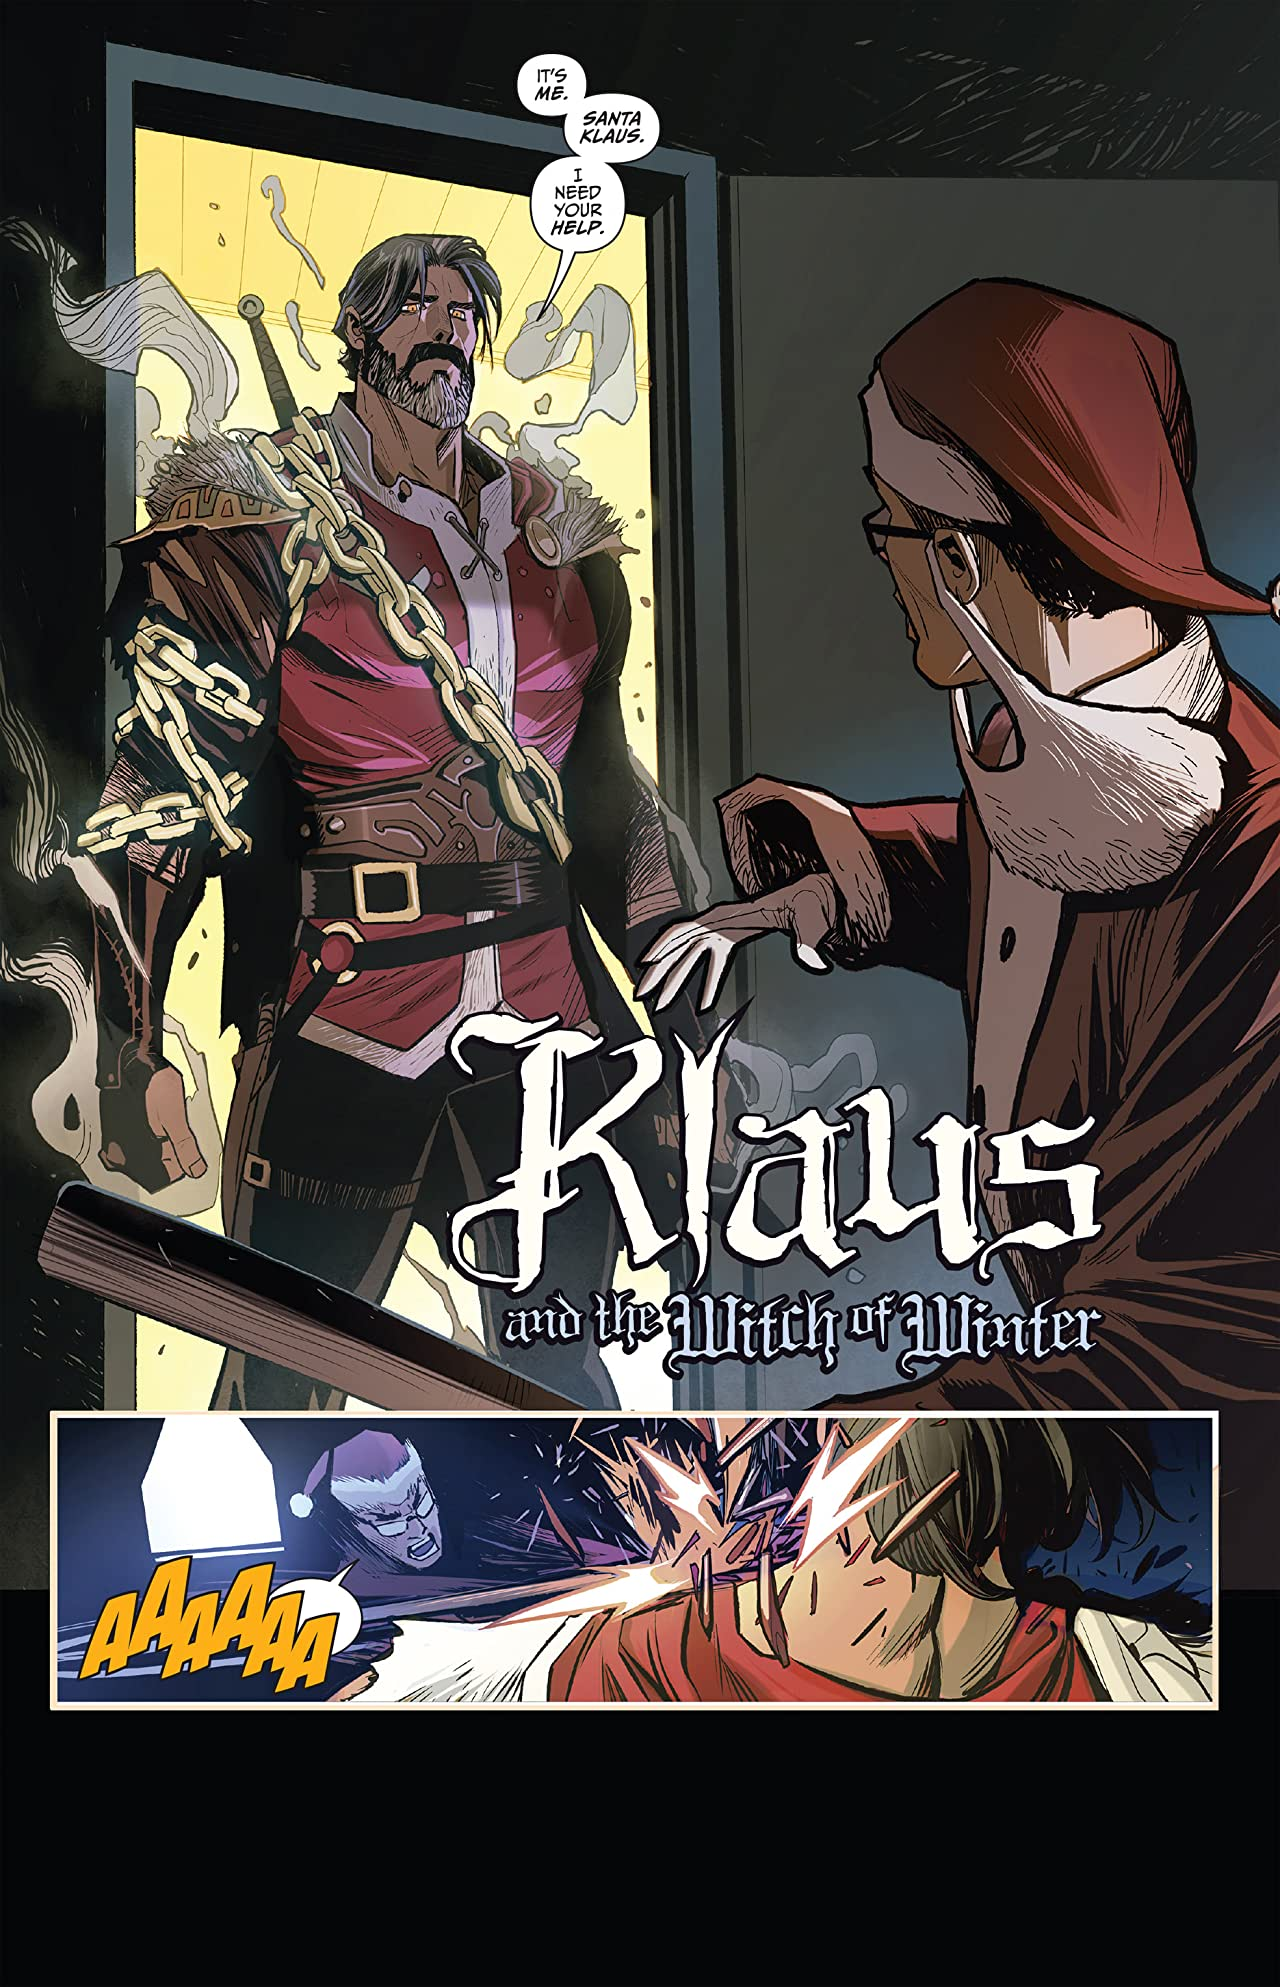 Klaus: The New Adventures of Santa Claus